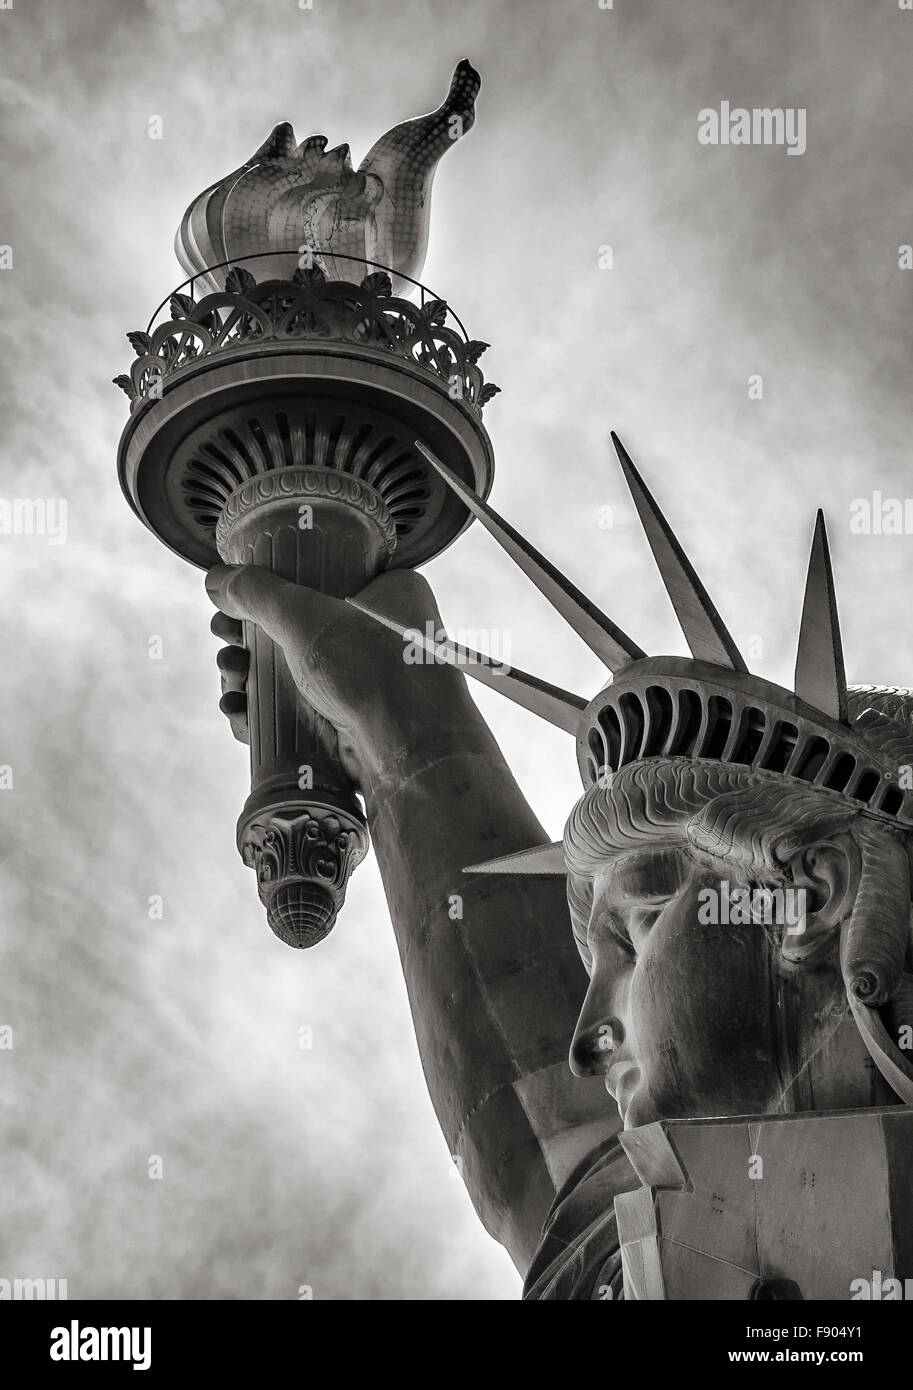 Black & White detail of torch, crown and profile of the Statue of Liberty, Liberty Island, New York City - Stock Image